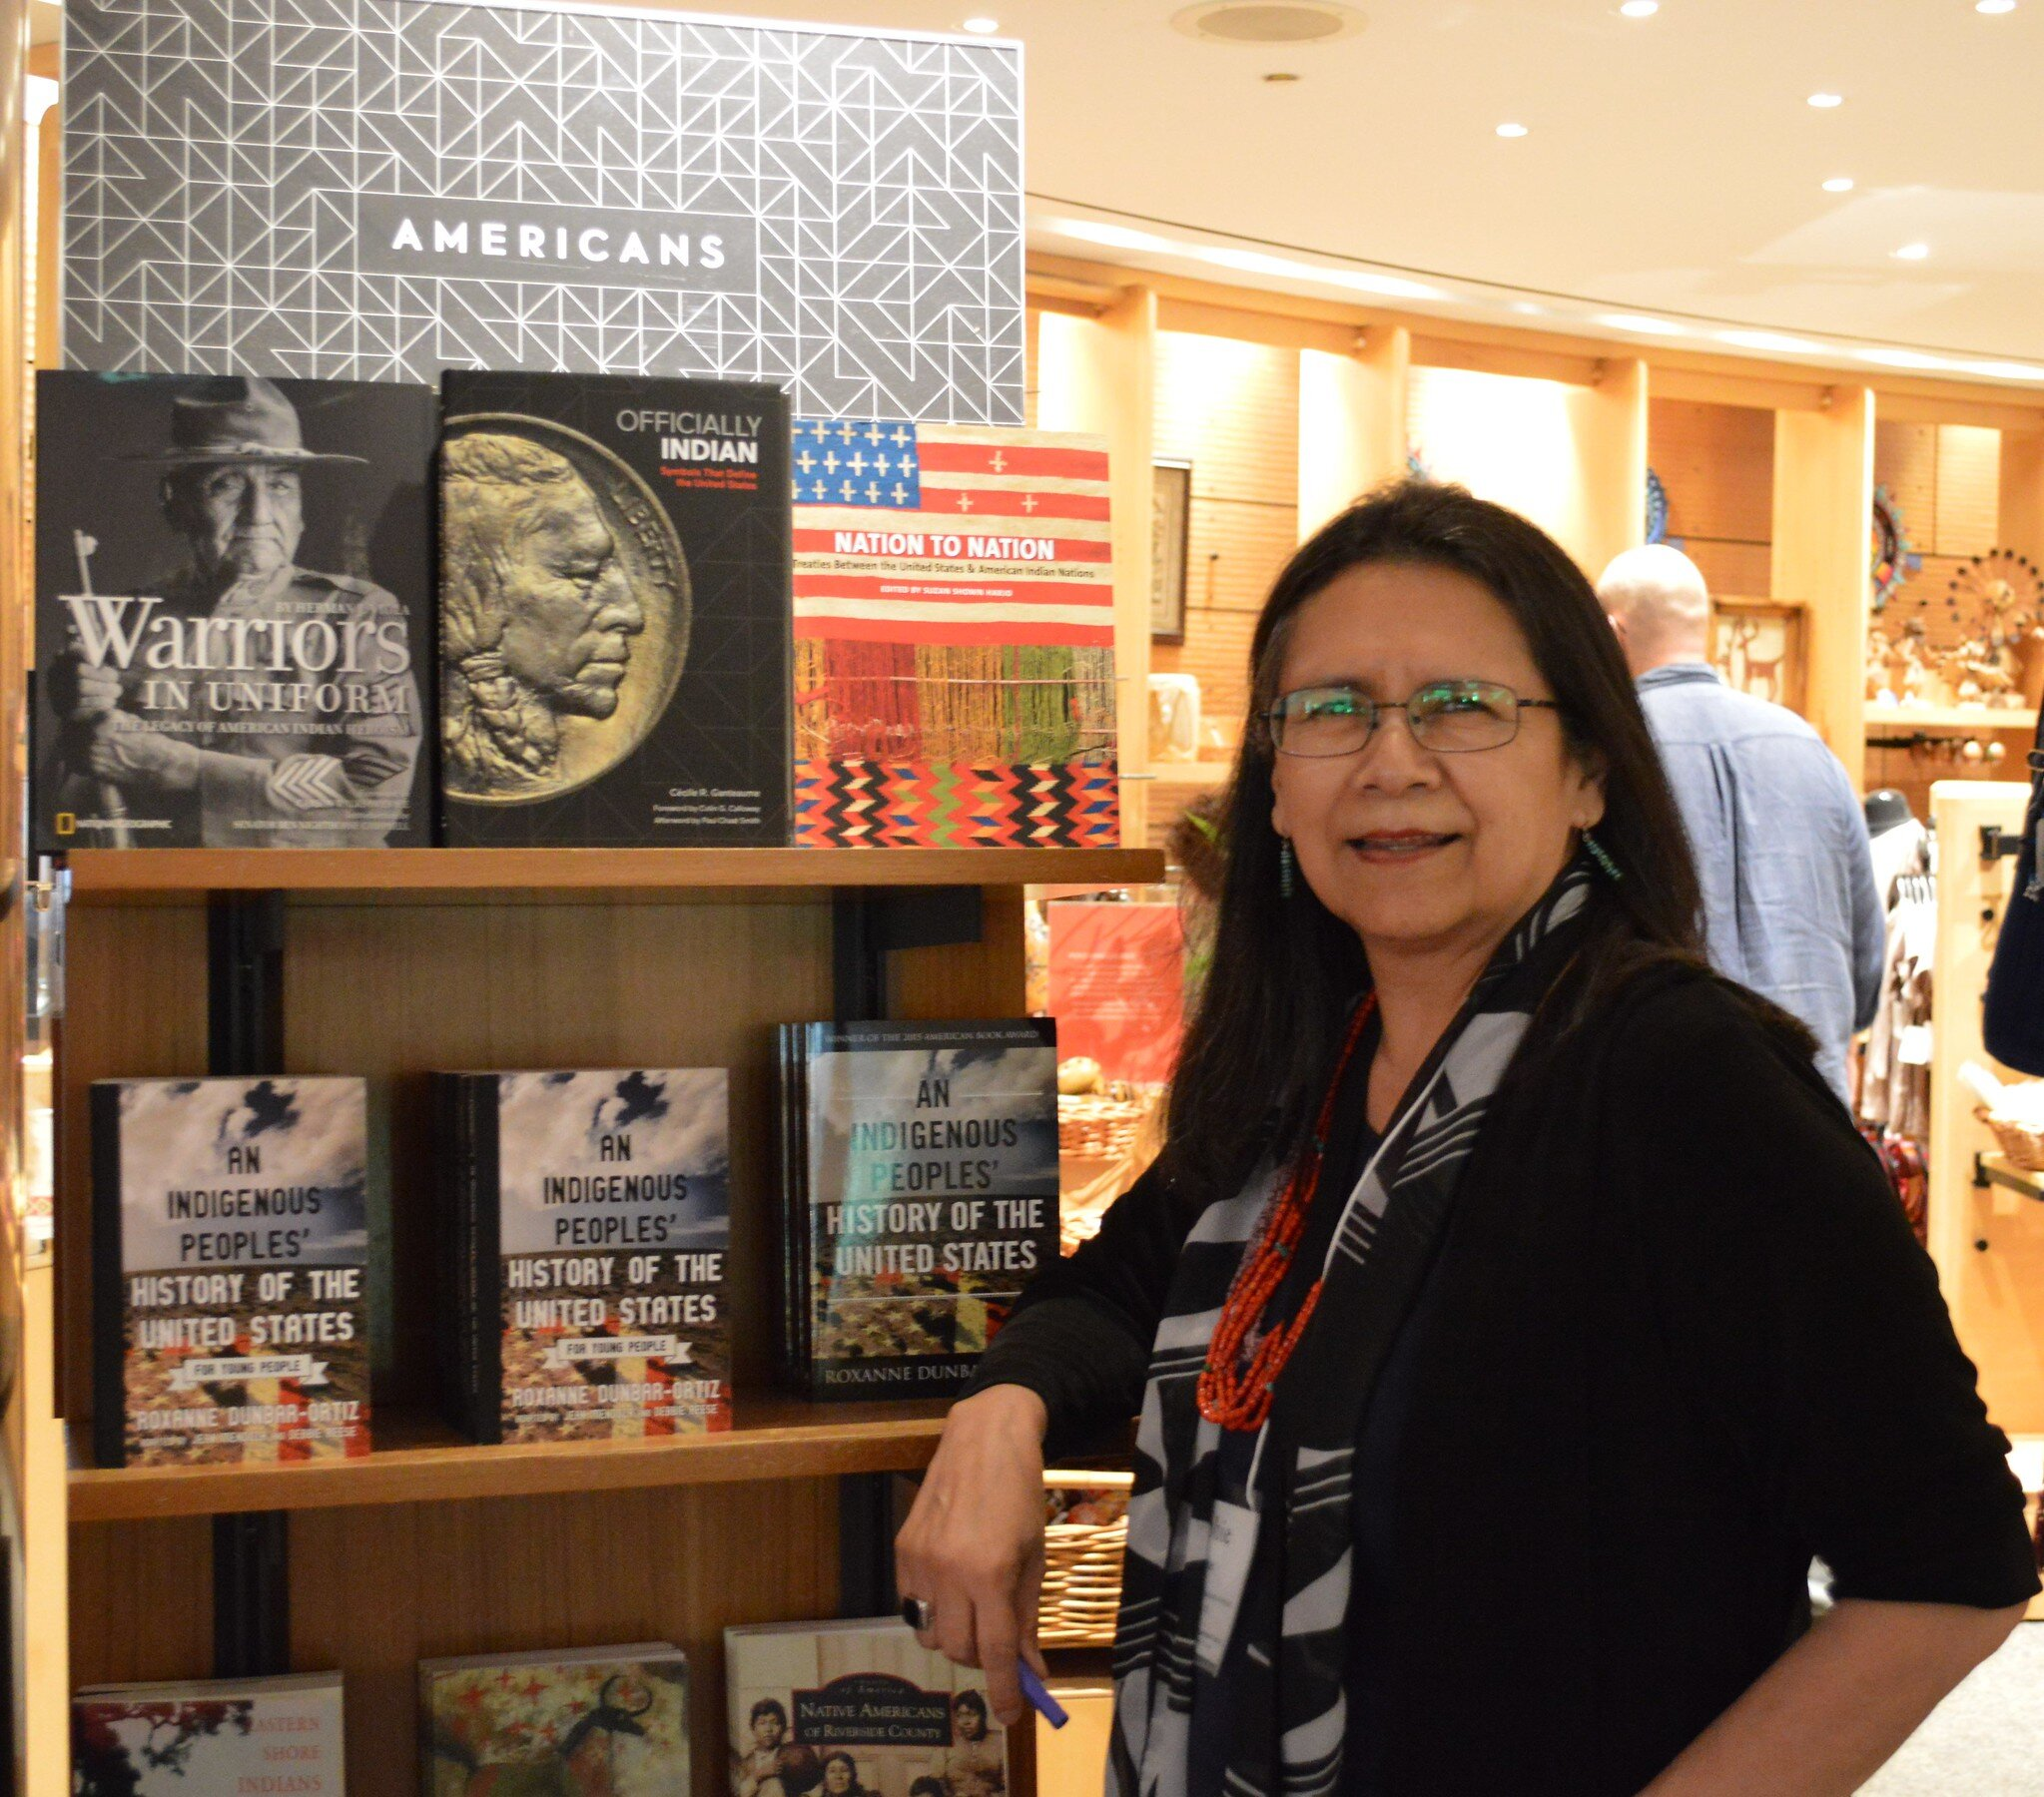 Debbie Reese preparing for book signing at the NMAI bookstore.